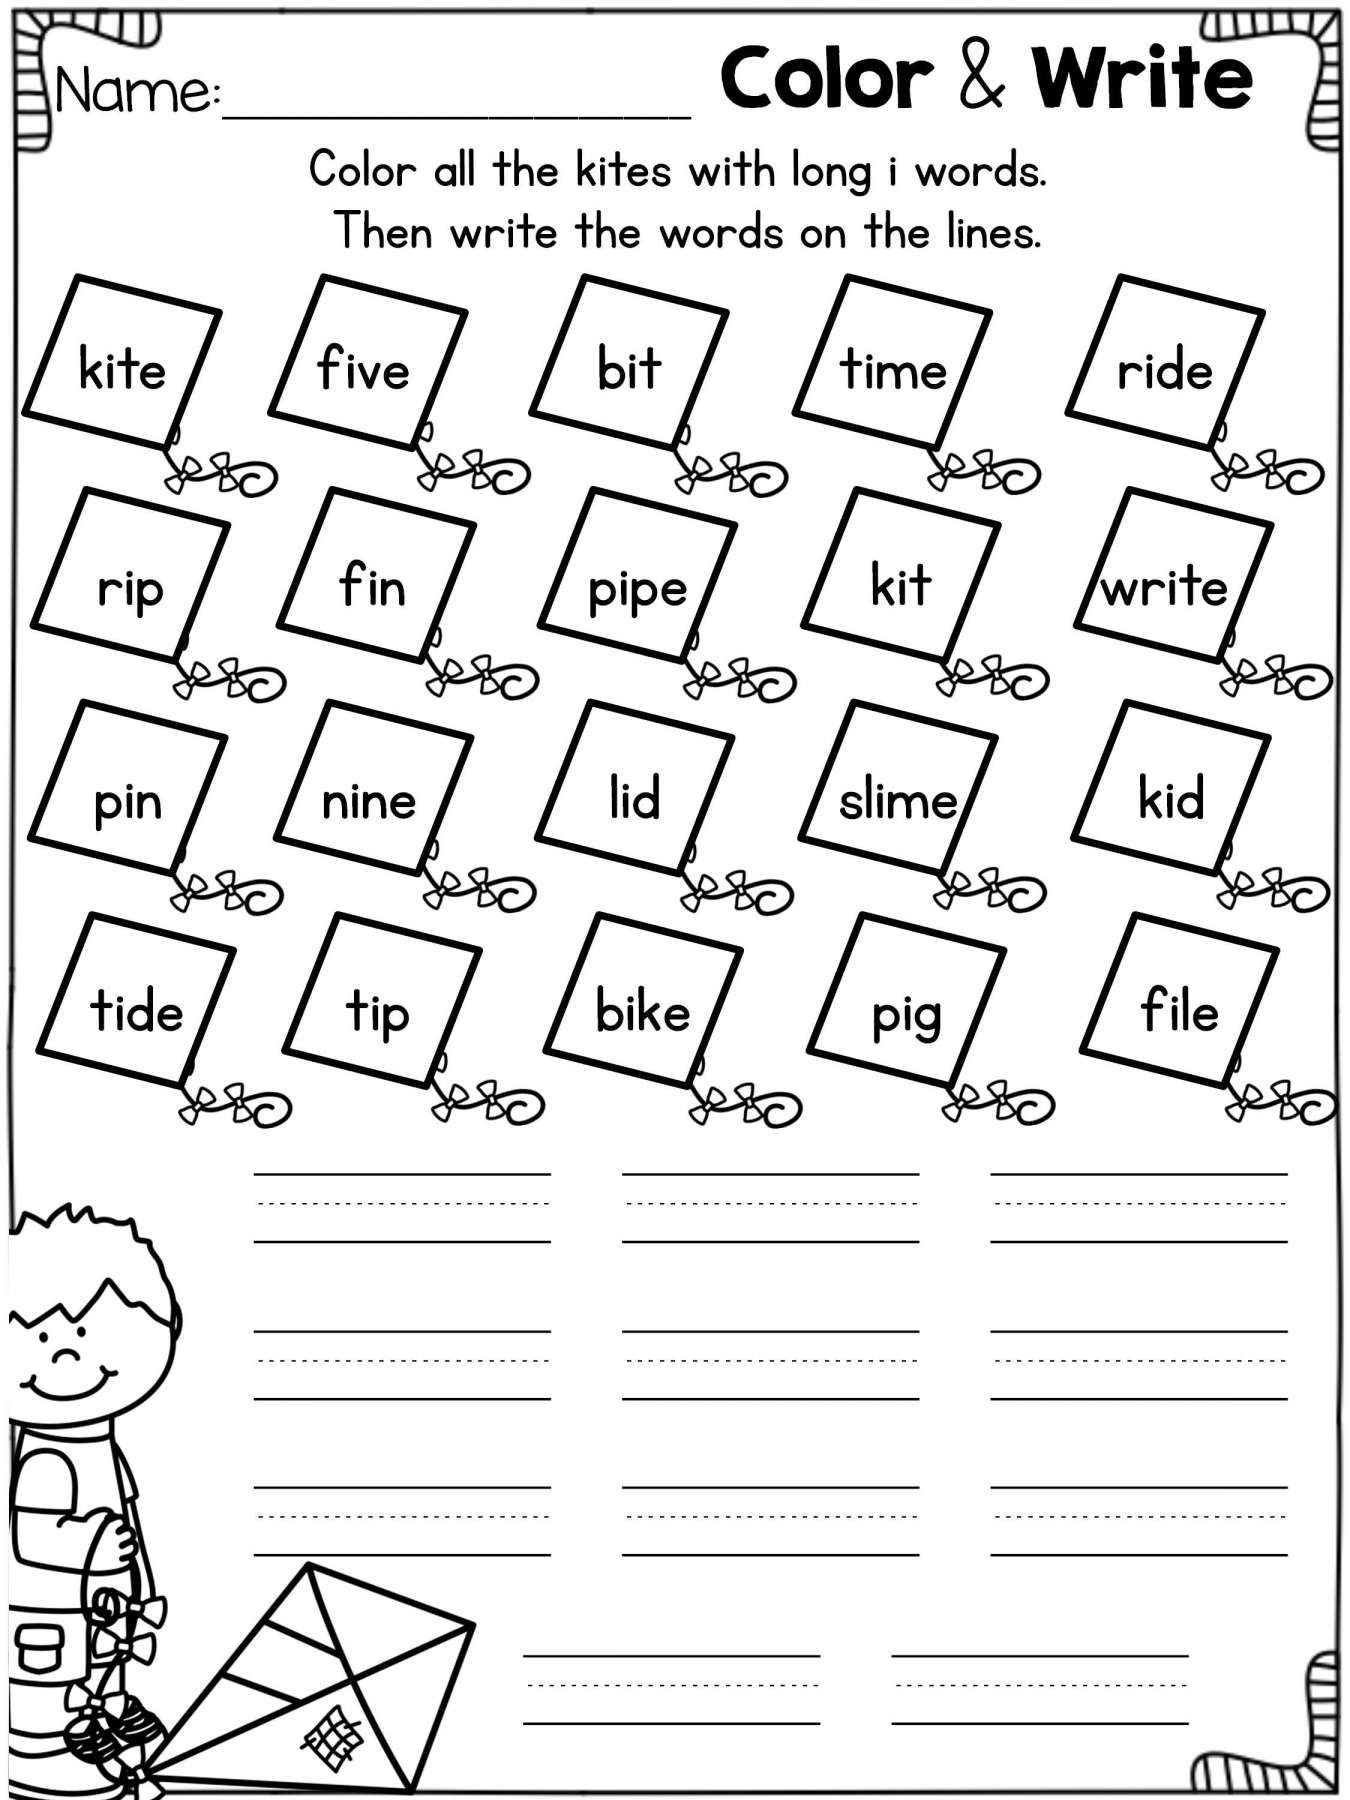 Silent E Worksheets 2nd Grade 12 Long Vowel Silent E Worksheets 2nd Grade